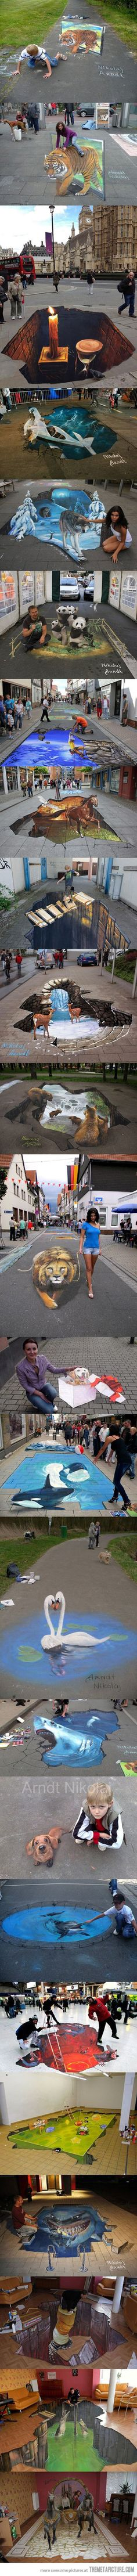 3D chalk art has got to be one of the neatest things in the world